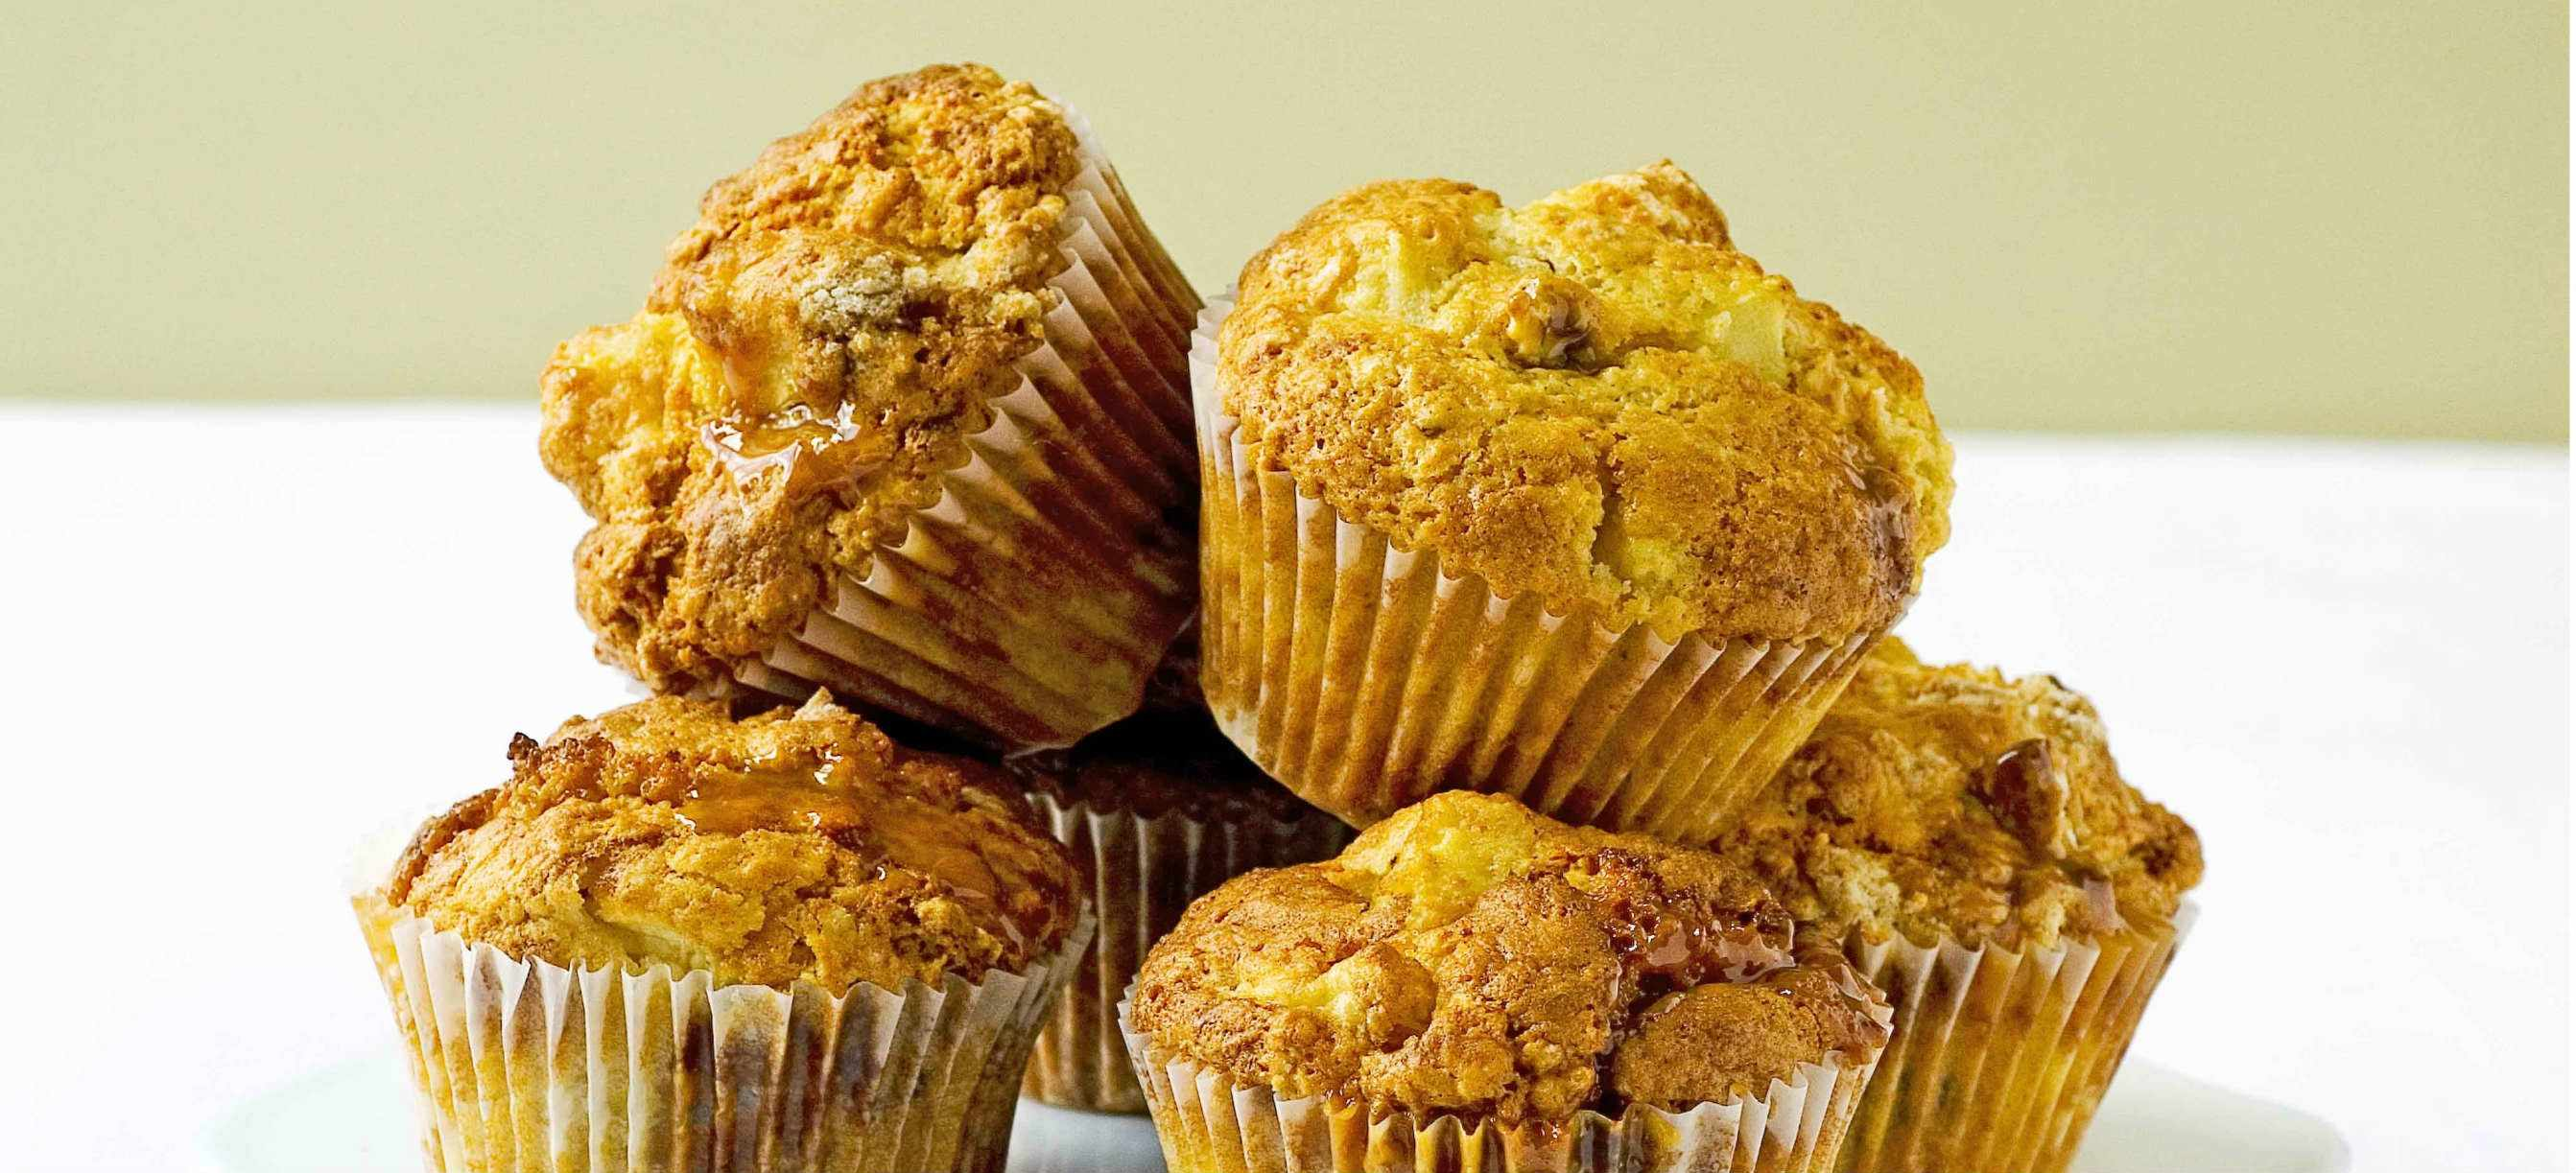 Toffee apple and pecan muffins